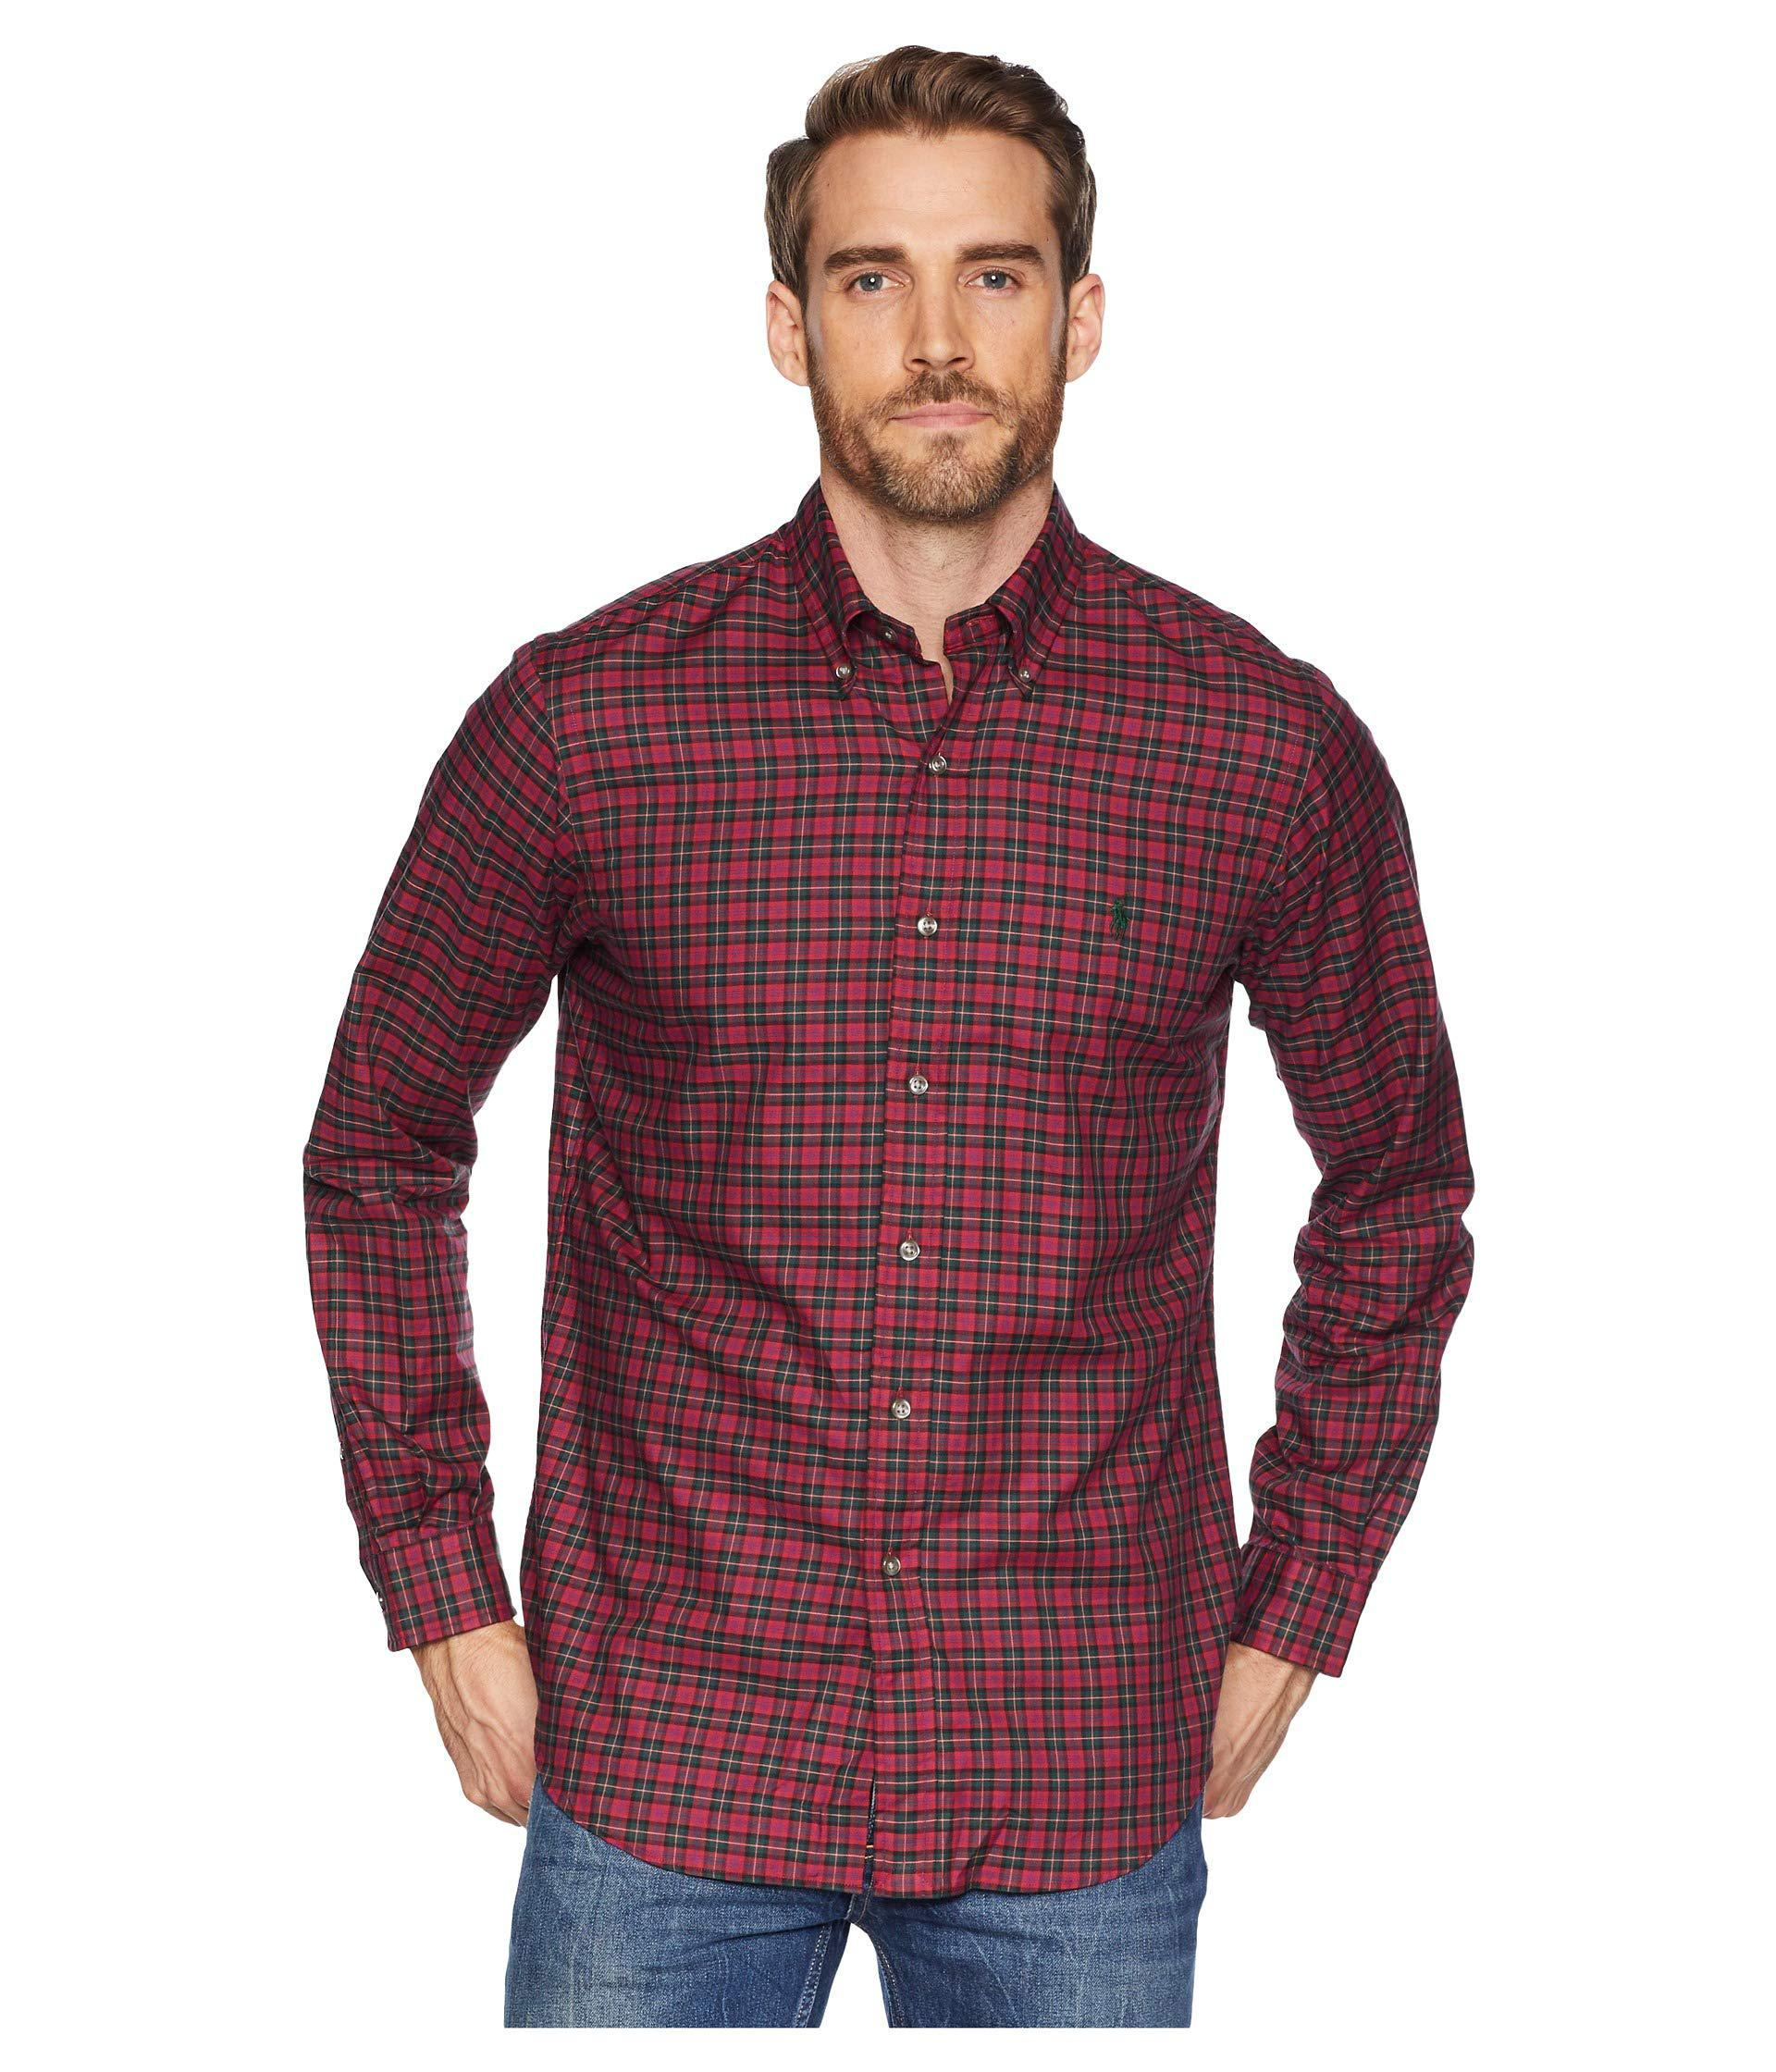 cc861b3b clearance lyst polo ralph lauren slim fit large check shirt in red ...